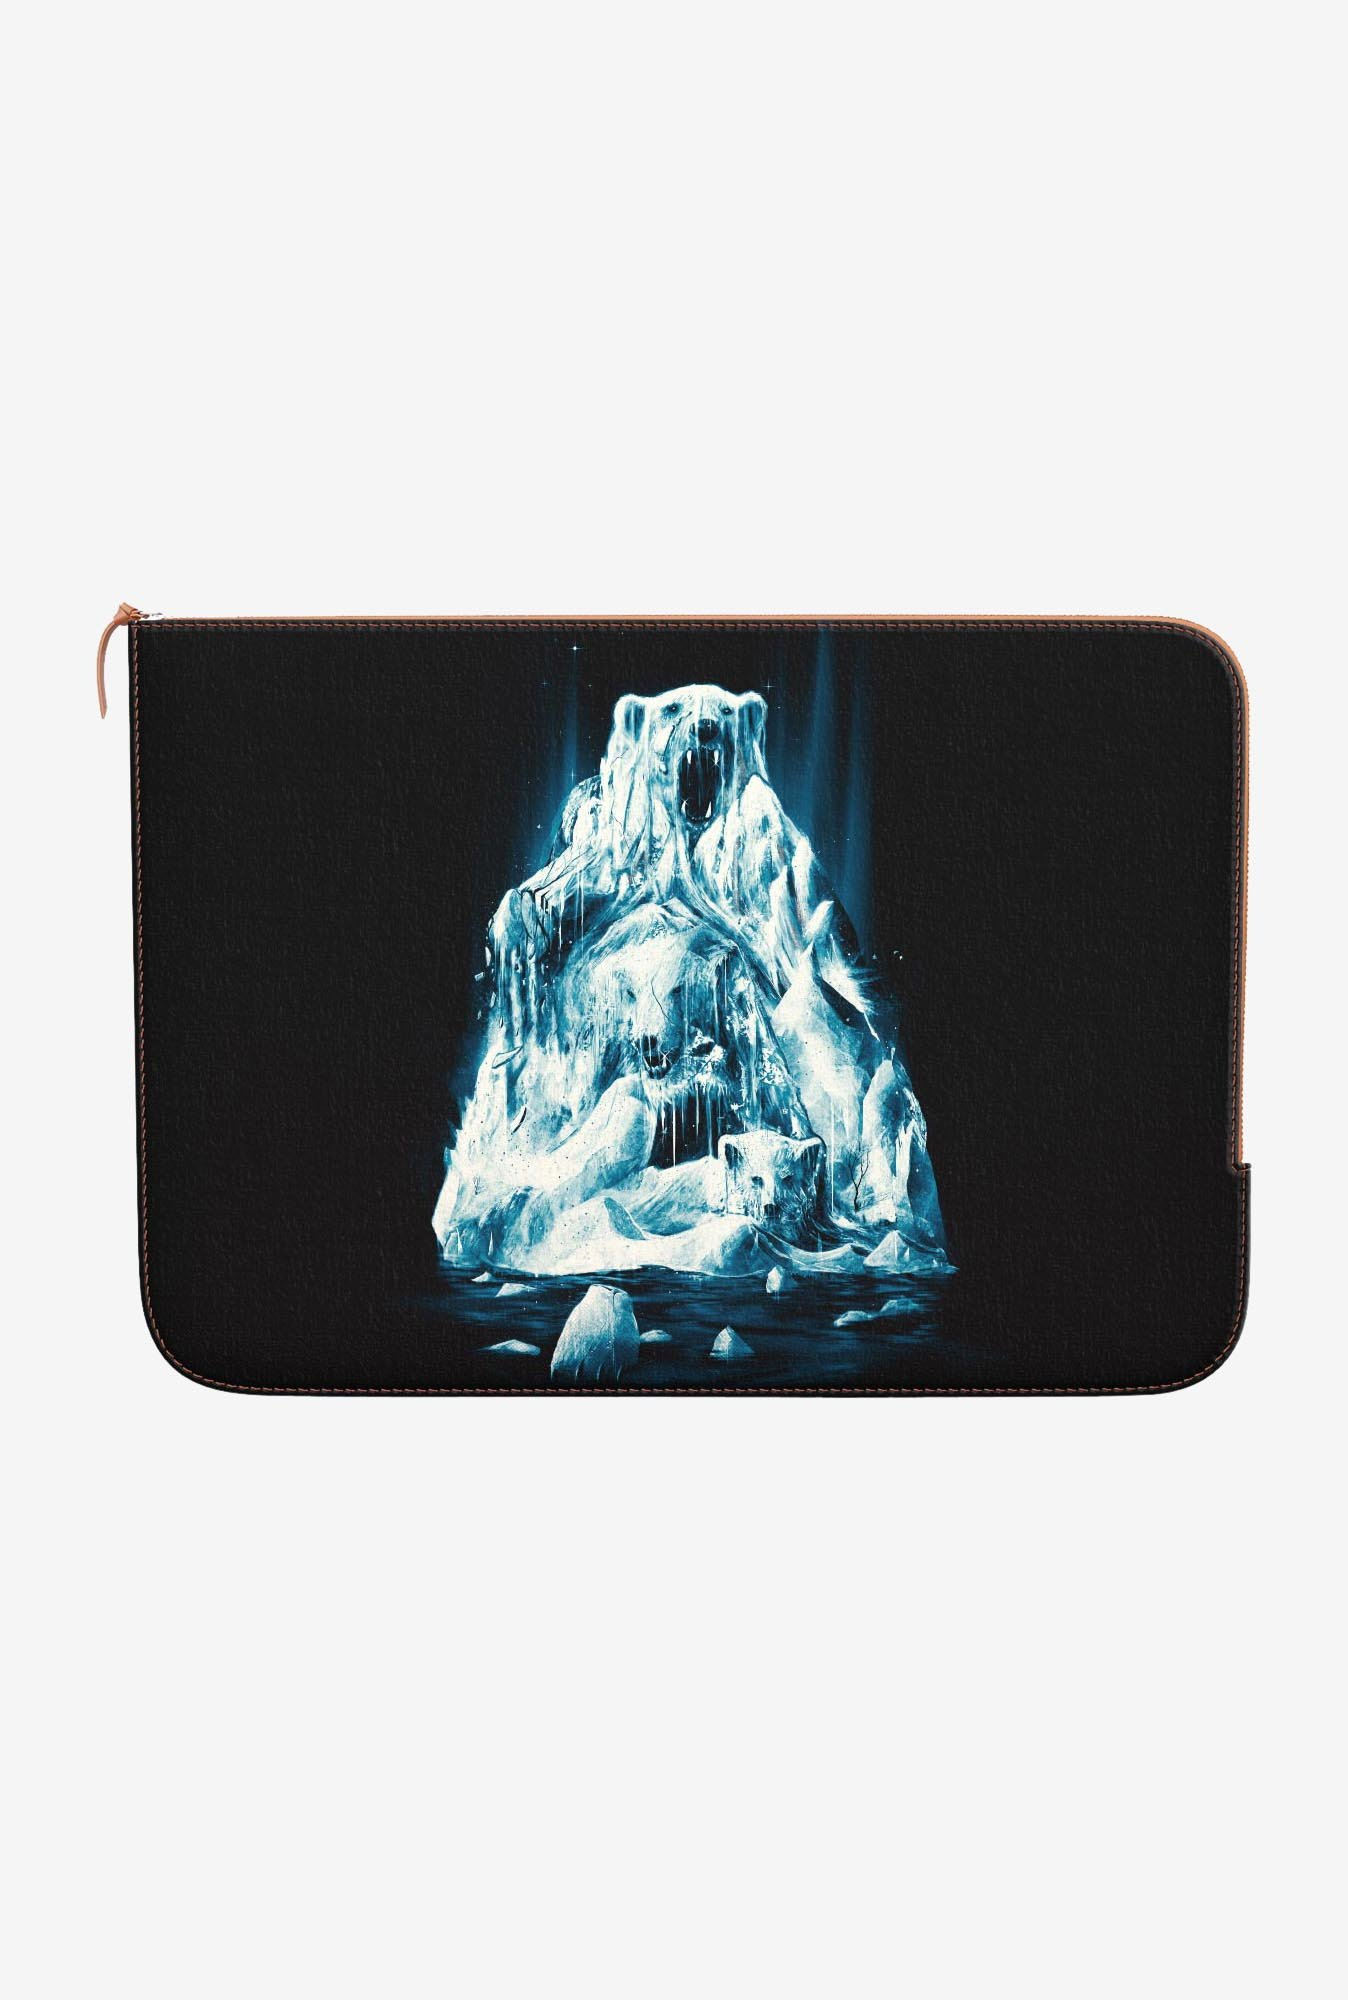 DailyObjects Polar Icebears MacBook Pro 13 Zippered Sleeve